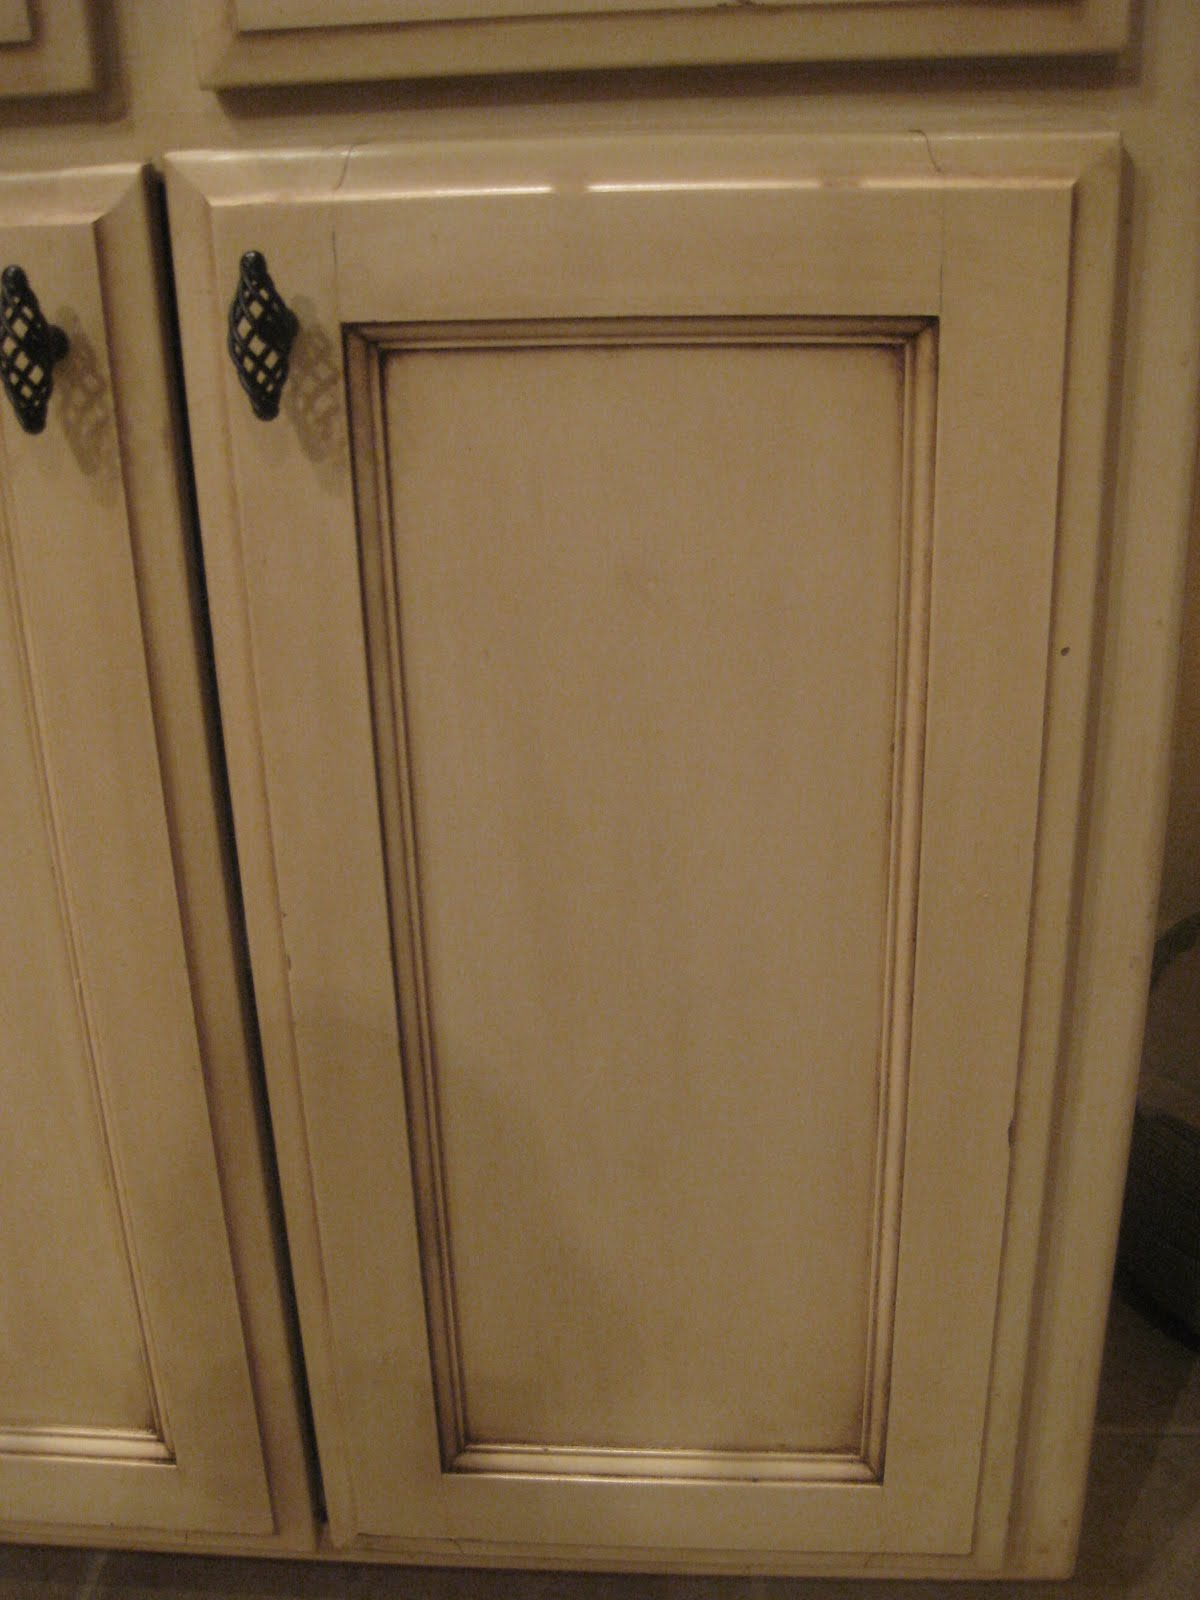 kristen's creations: ~~glazing painted kitchen cabinets~~